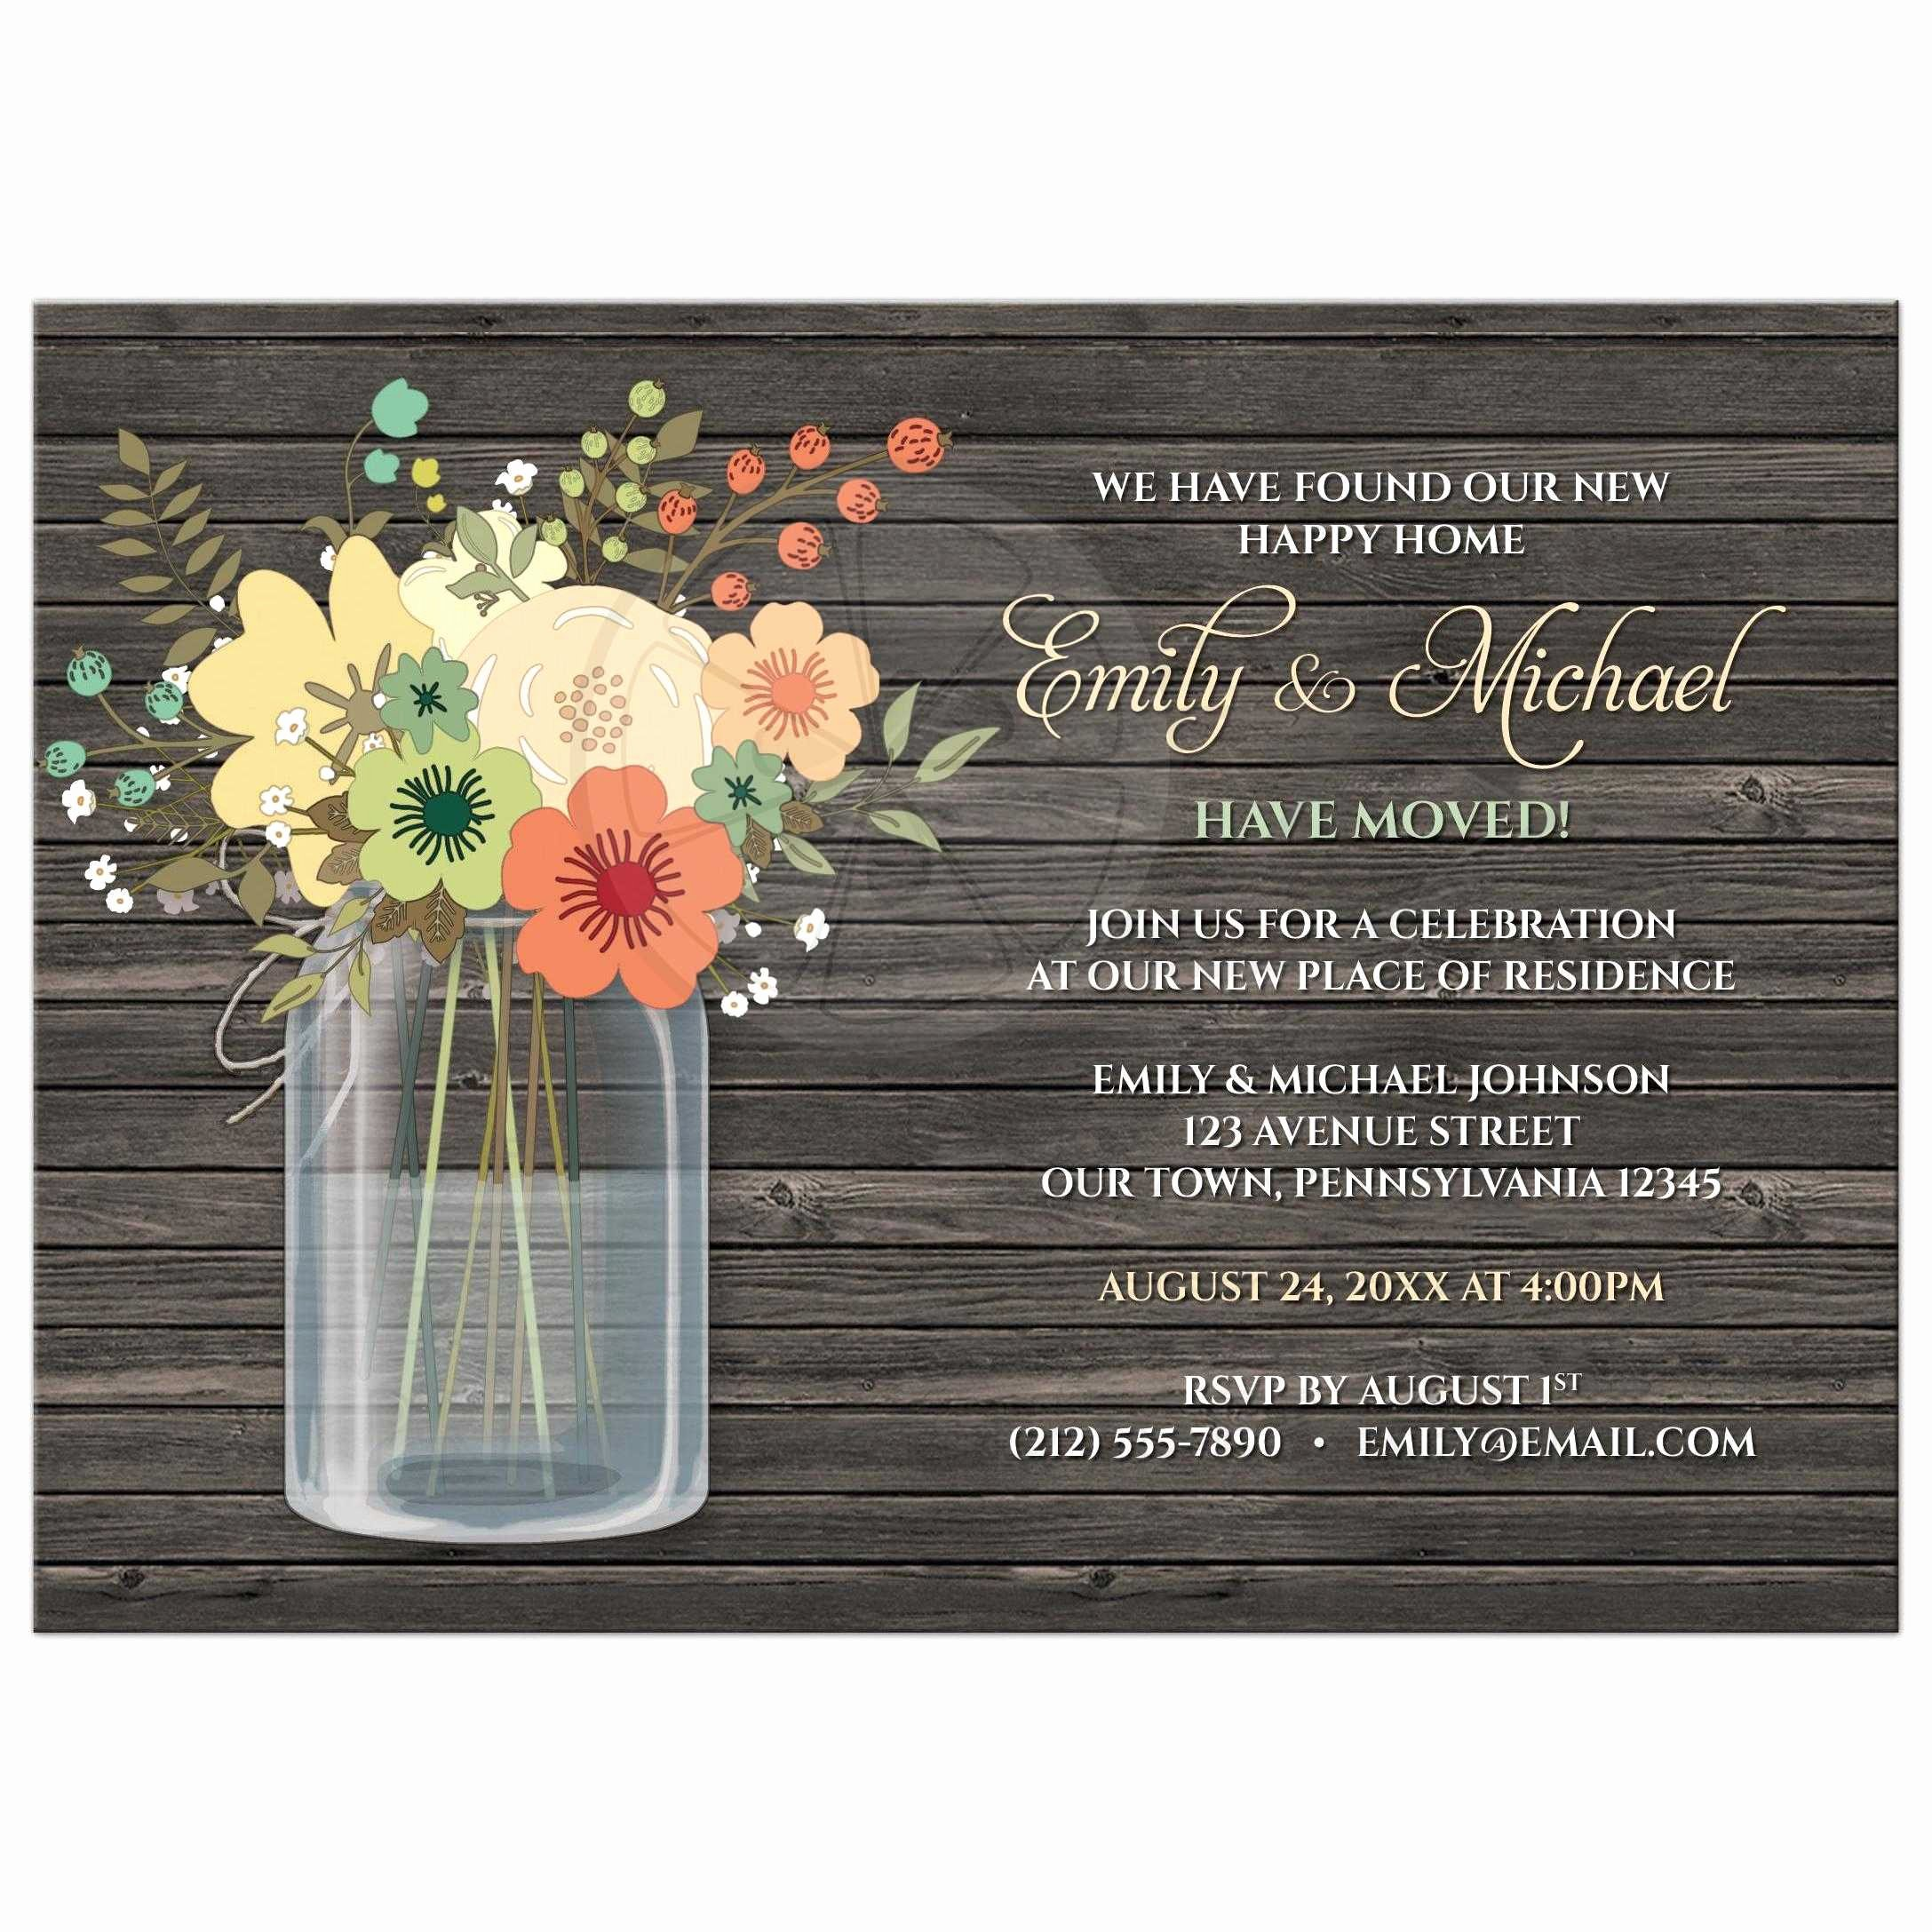 Housewarming Images for Invitation Beautiful Housewarming Invitations Rustic Floral Wood Mason Jar